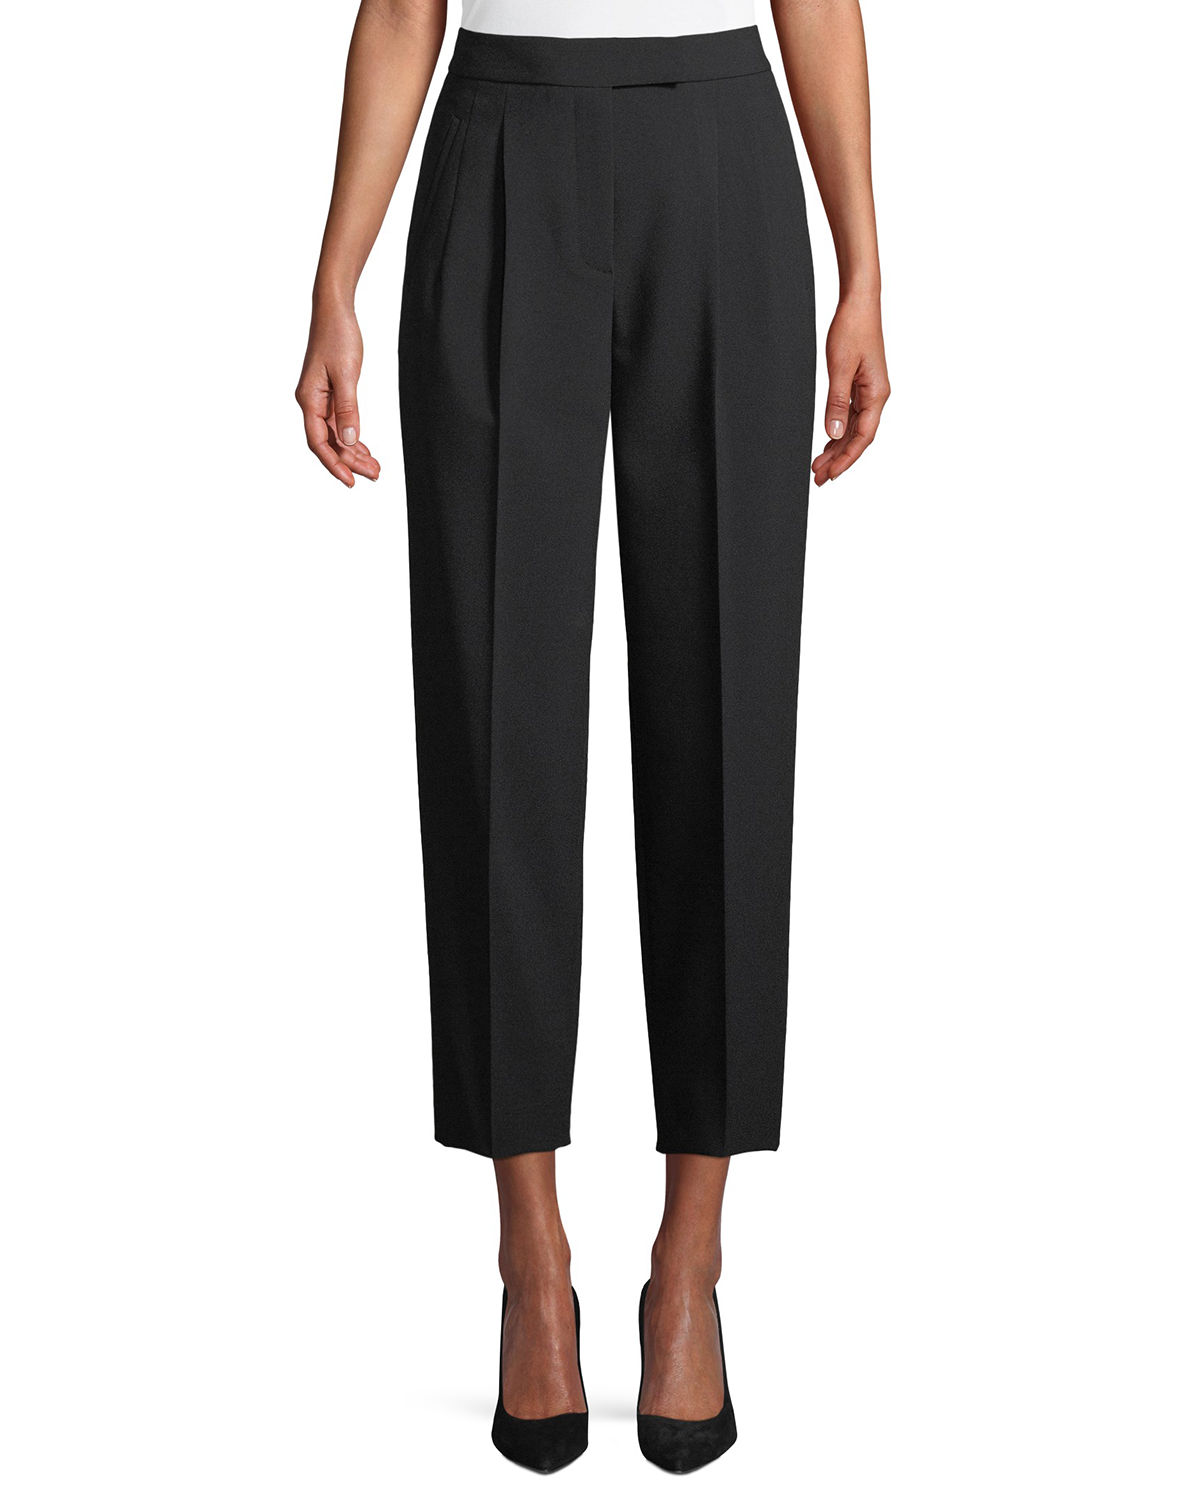 City Pants Tapered-Leg Cropped Prospective Light Pants